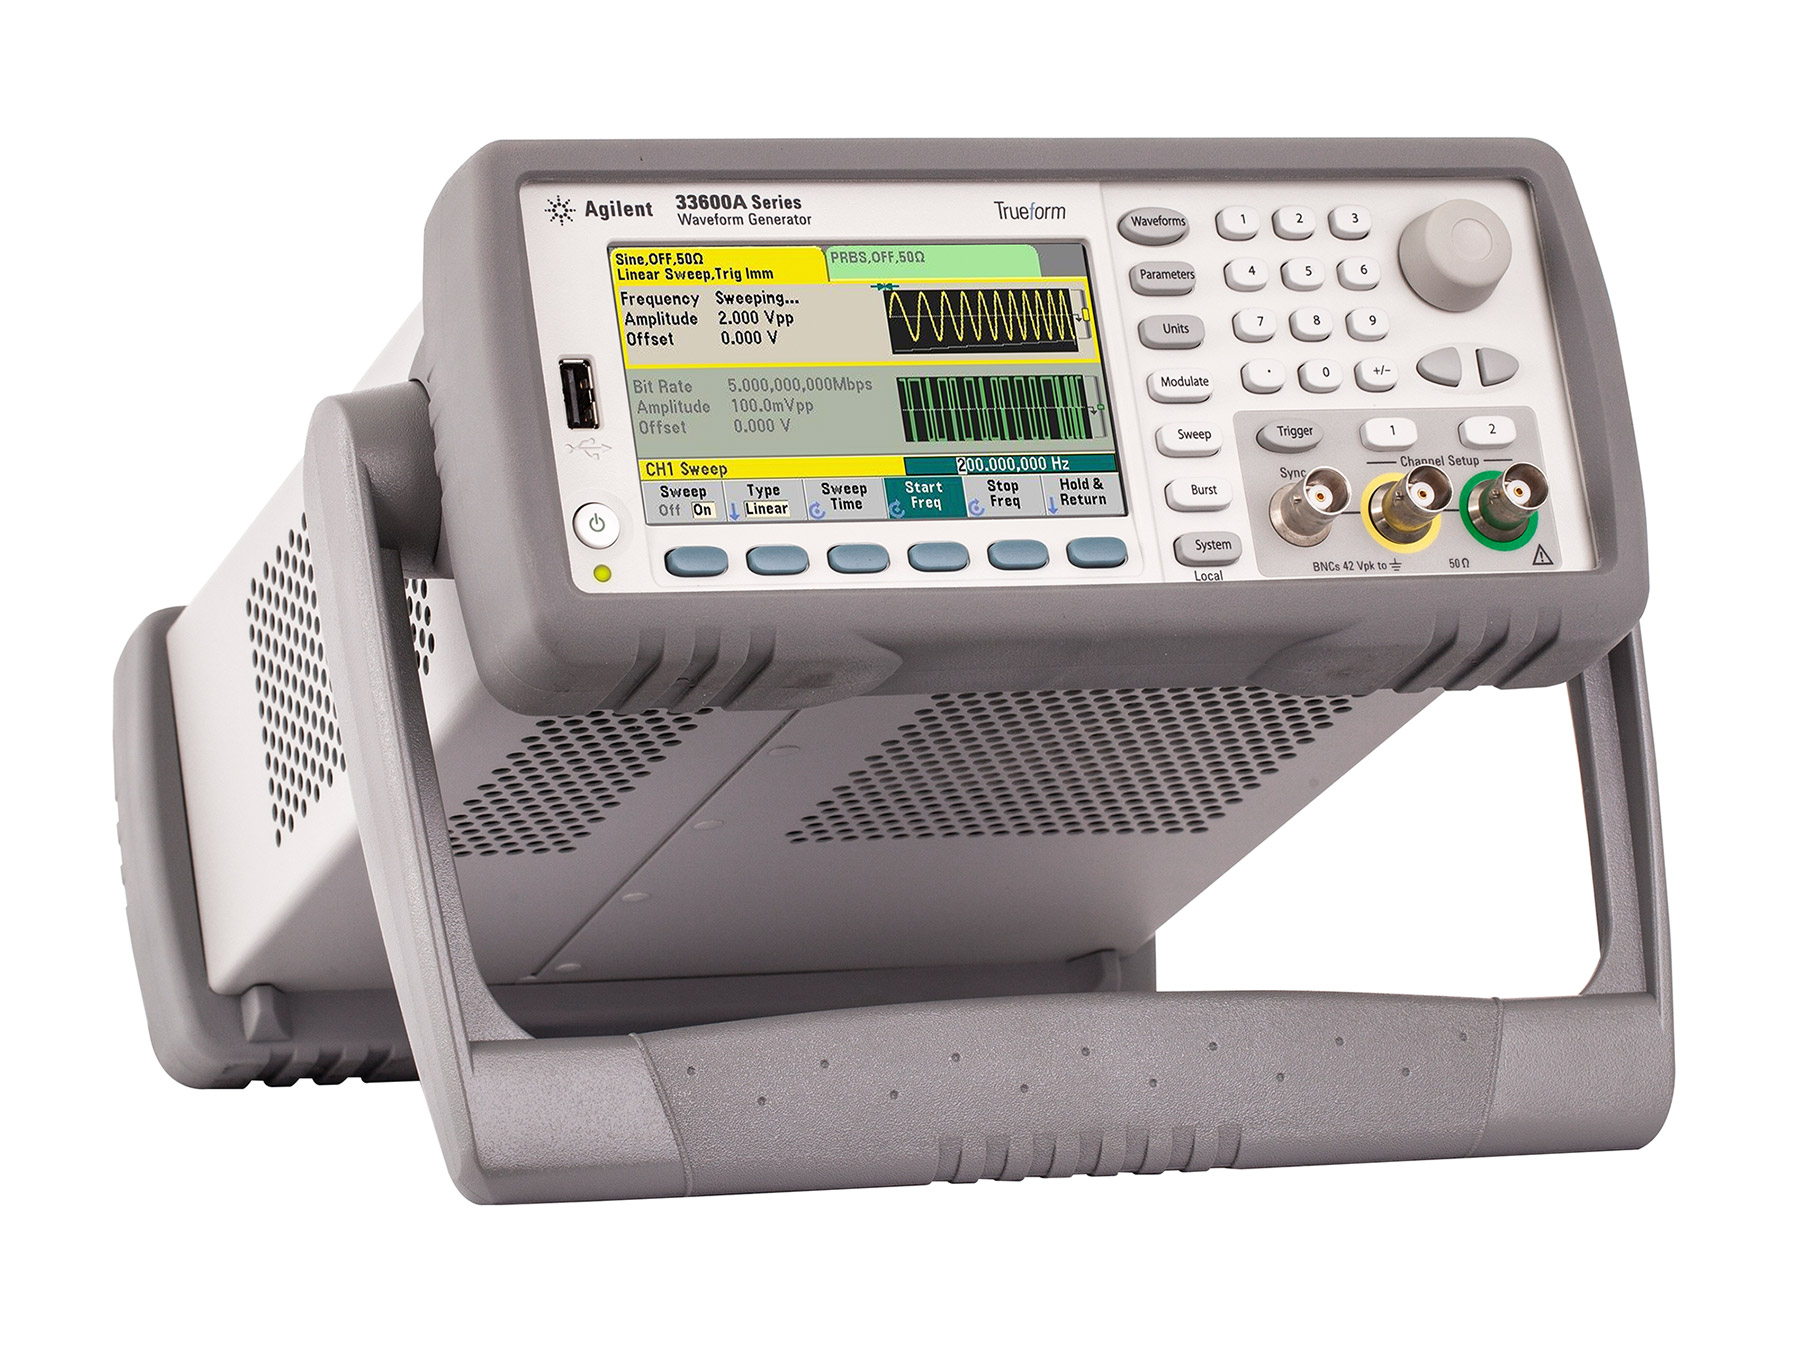 Rent Agilent 33600A Series Trueform Waveform Generators